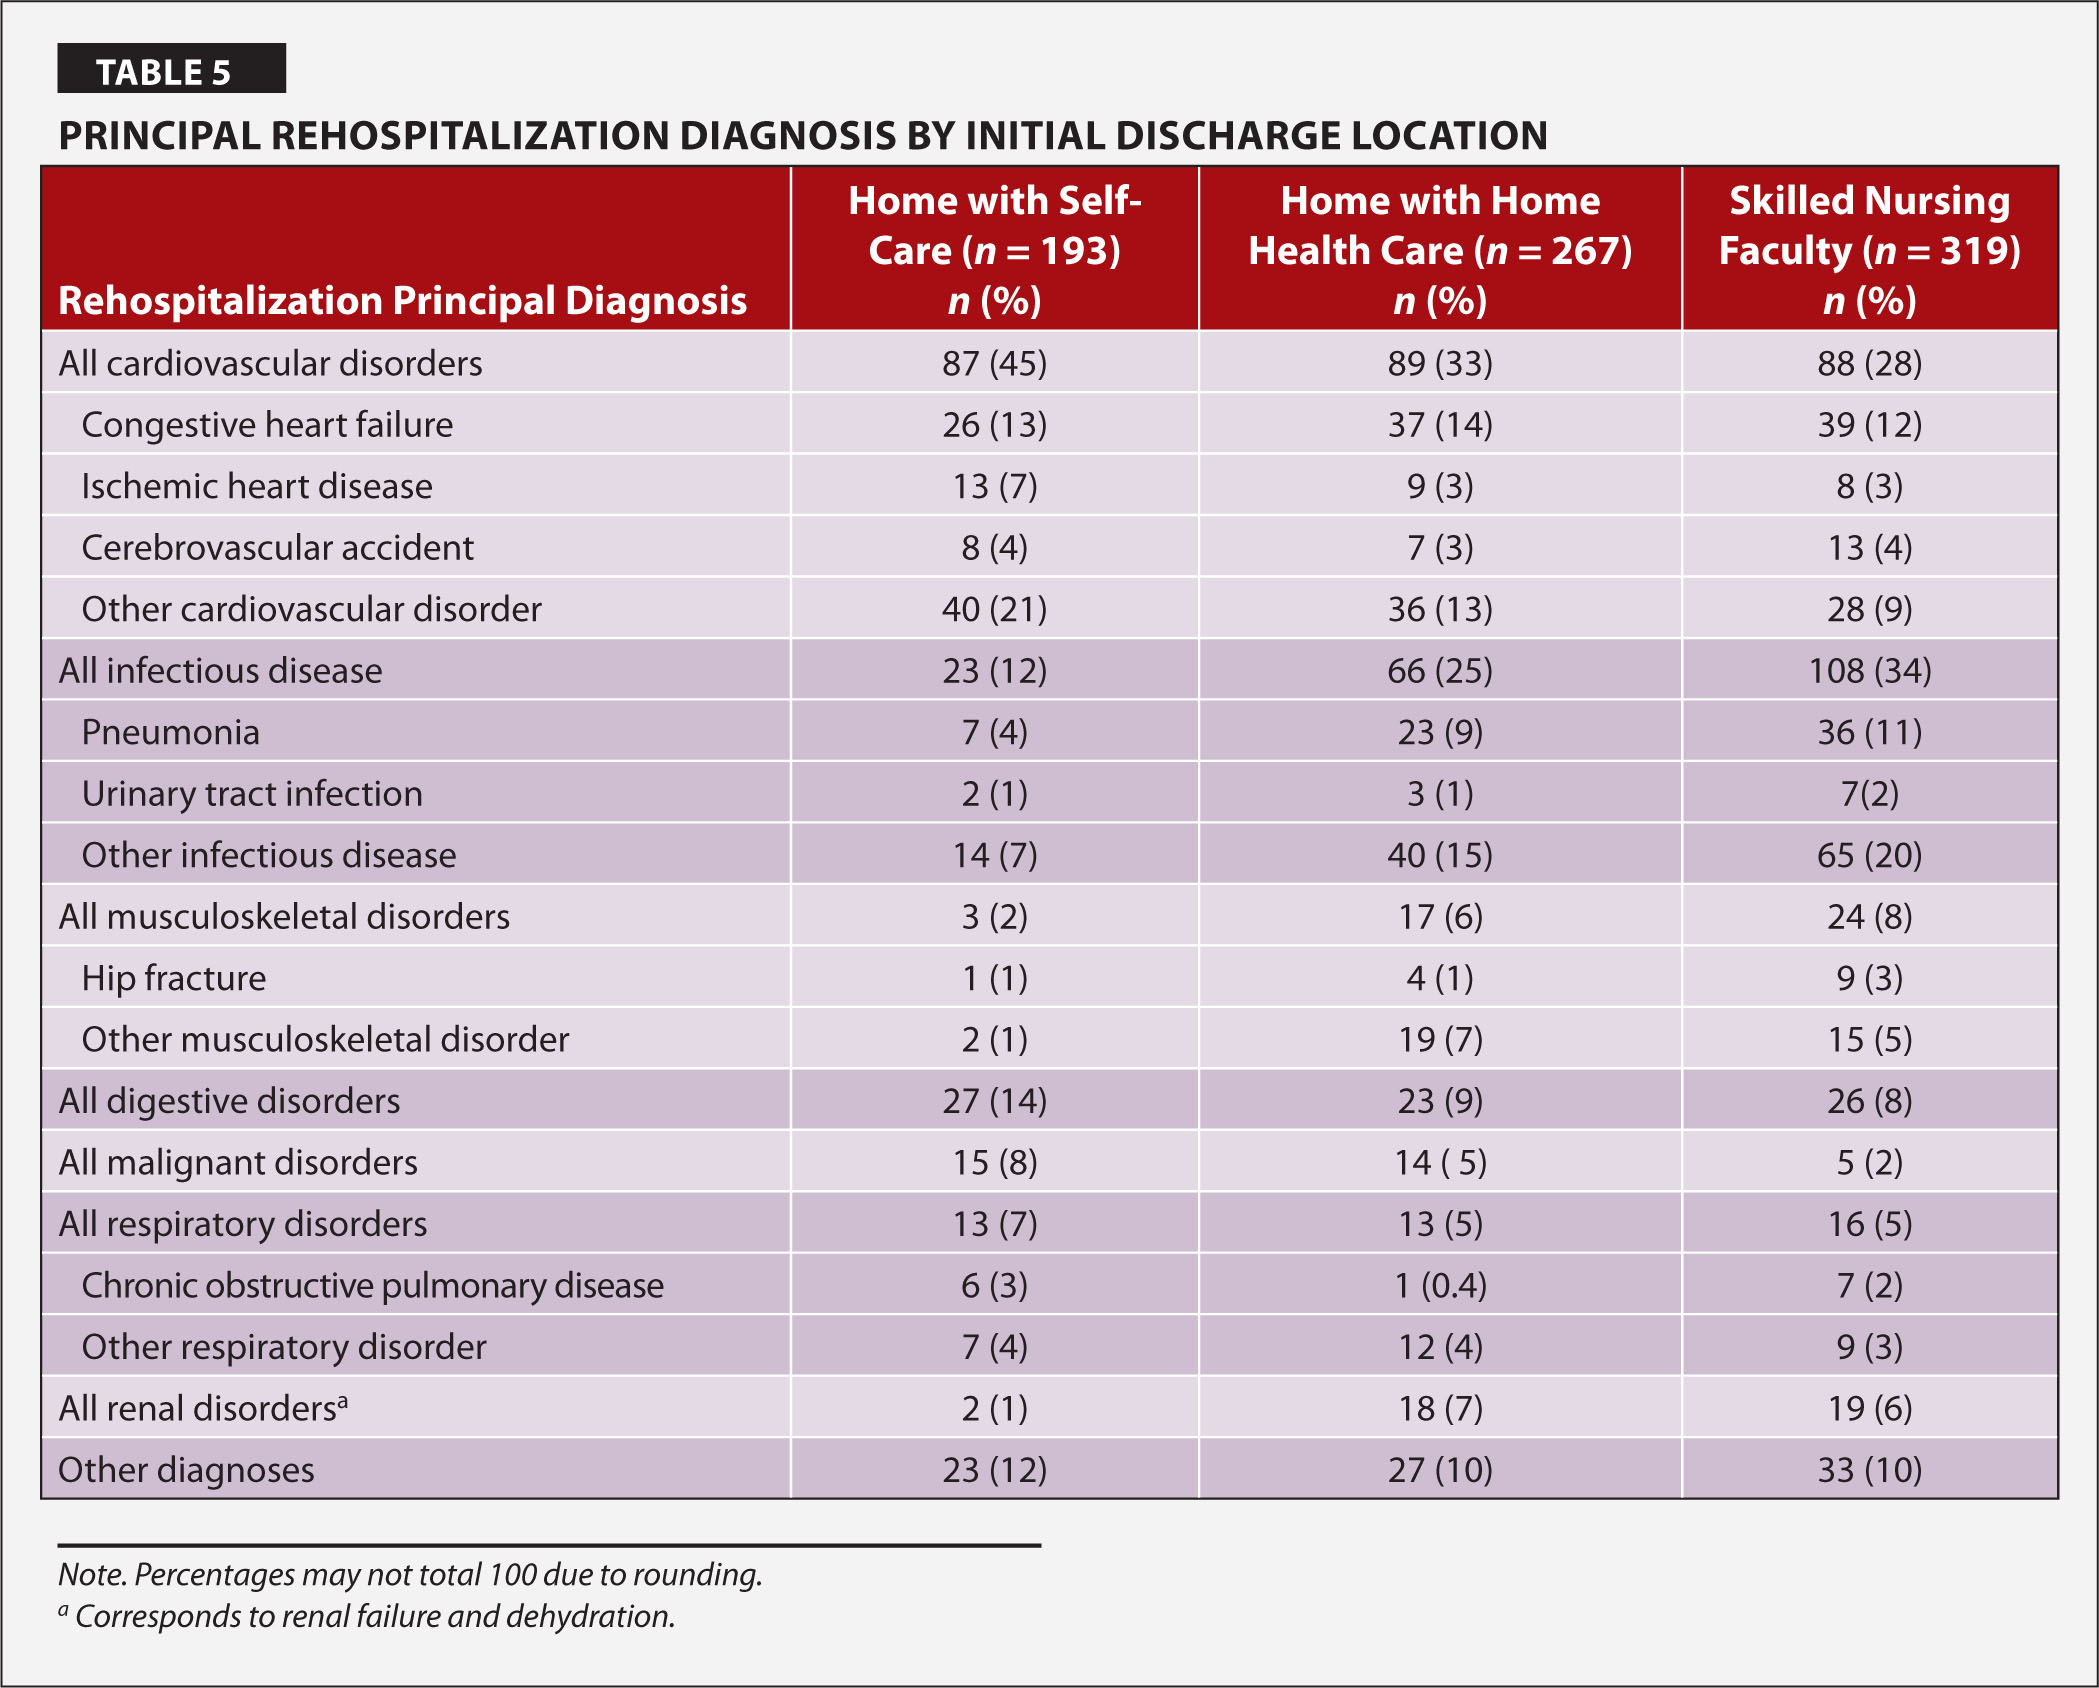 Principal Rehospitalization Diagnosis by Initial Discharge Location